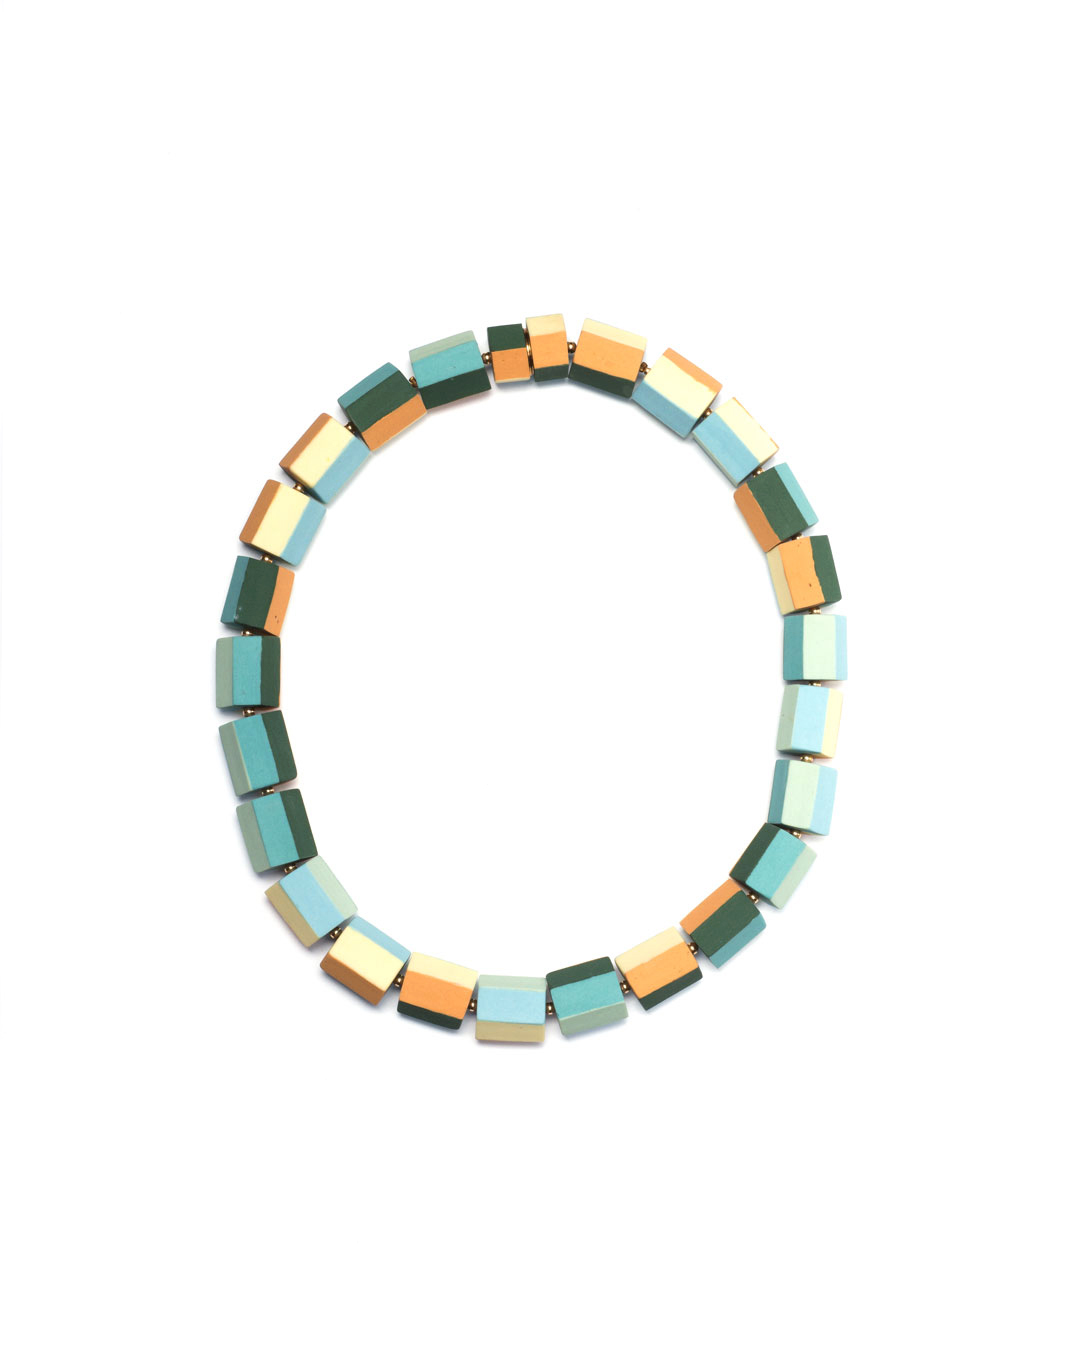 Nina Sajet, untitled, 2017, necklace; porcelain, pigment, wire, gilded silver, brass, 170 x 170 x 17 mm, €1200